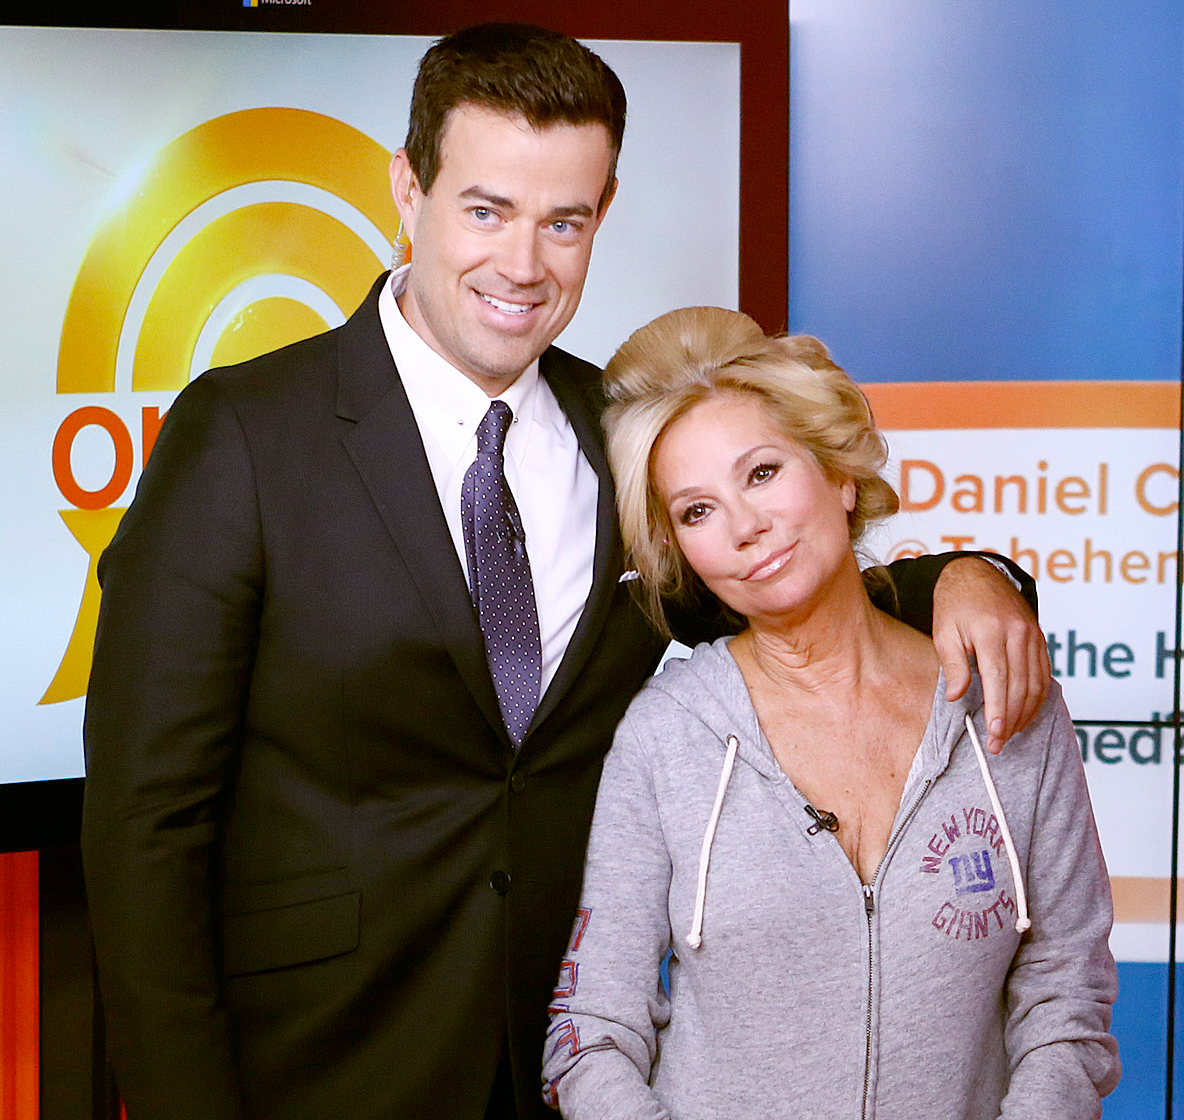 """Carson-Daly-Kathie-Lee-Gifford - """"She blazed her own path and in this rising climate, that's so rough where someone can be put up for critique for putting herself out there and being honest. She paved the way for that to be possible. It's a great work environment that she'll have your back in and she'll be herself."""""""